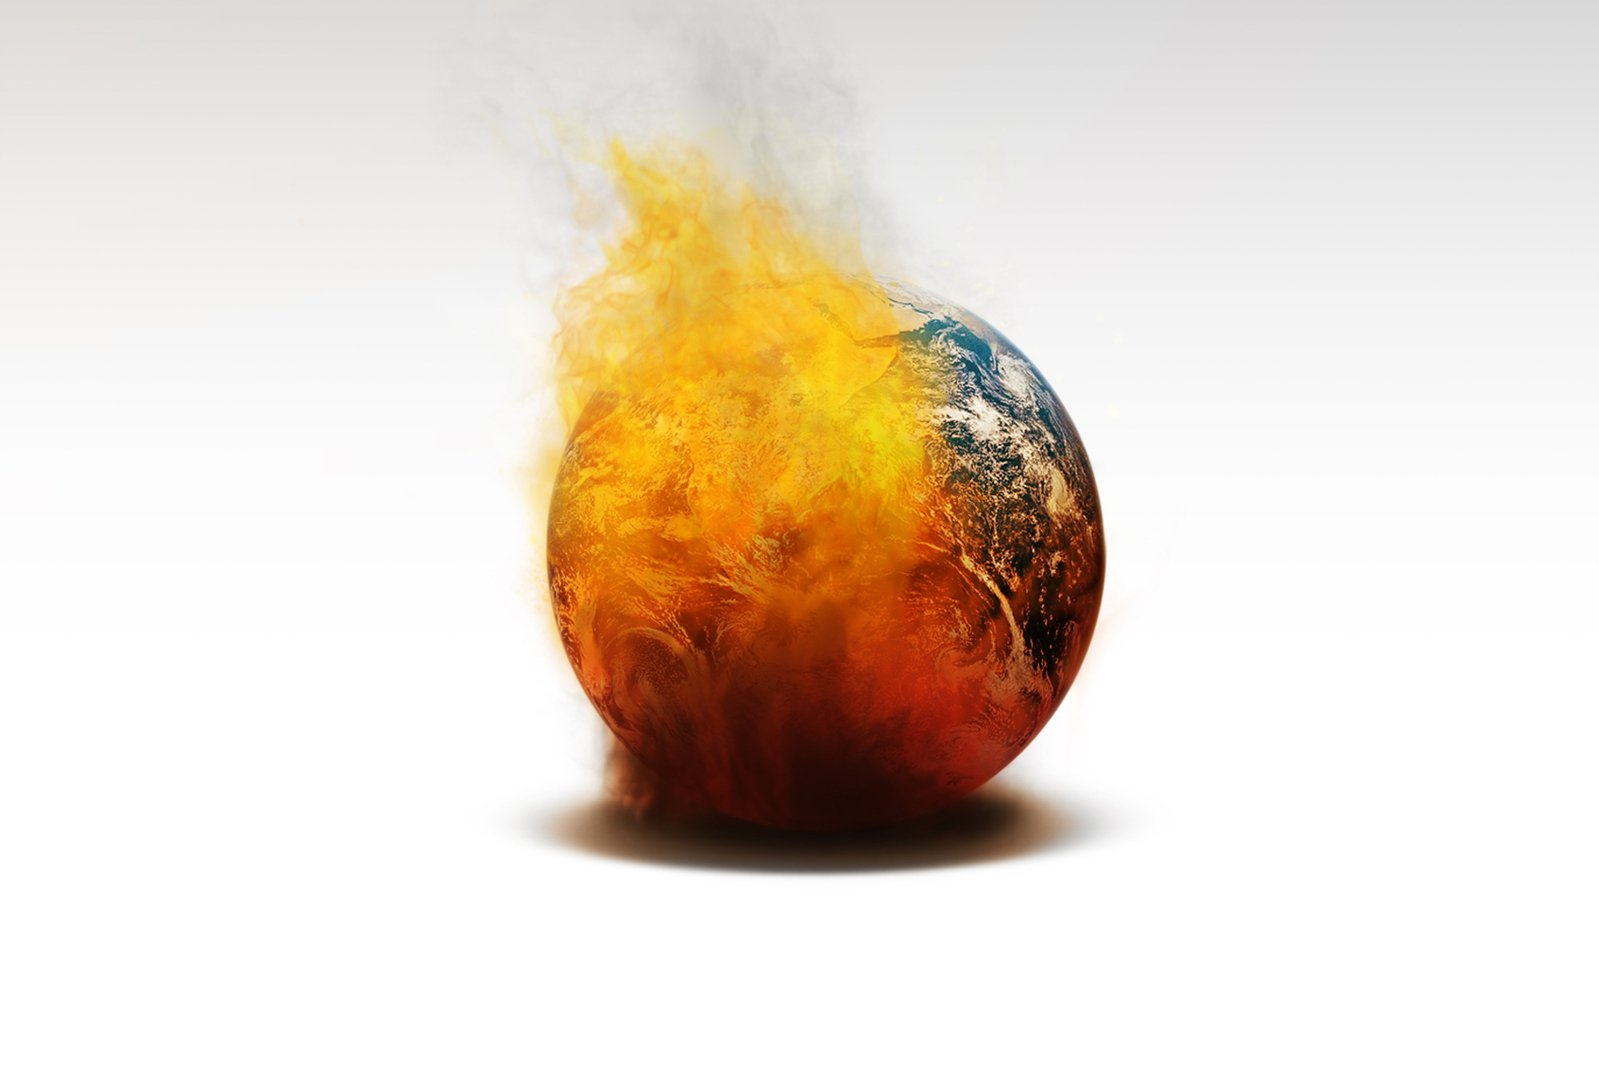 global warming picture